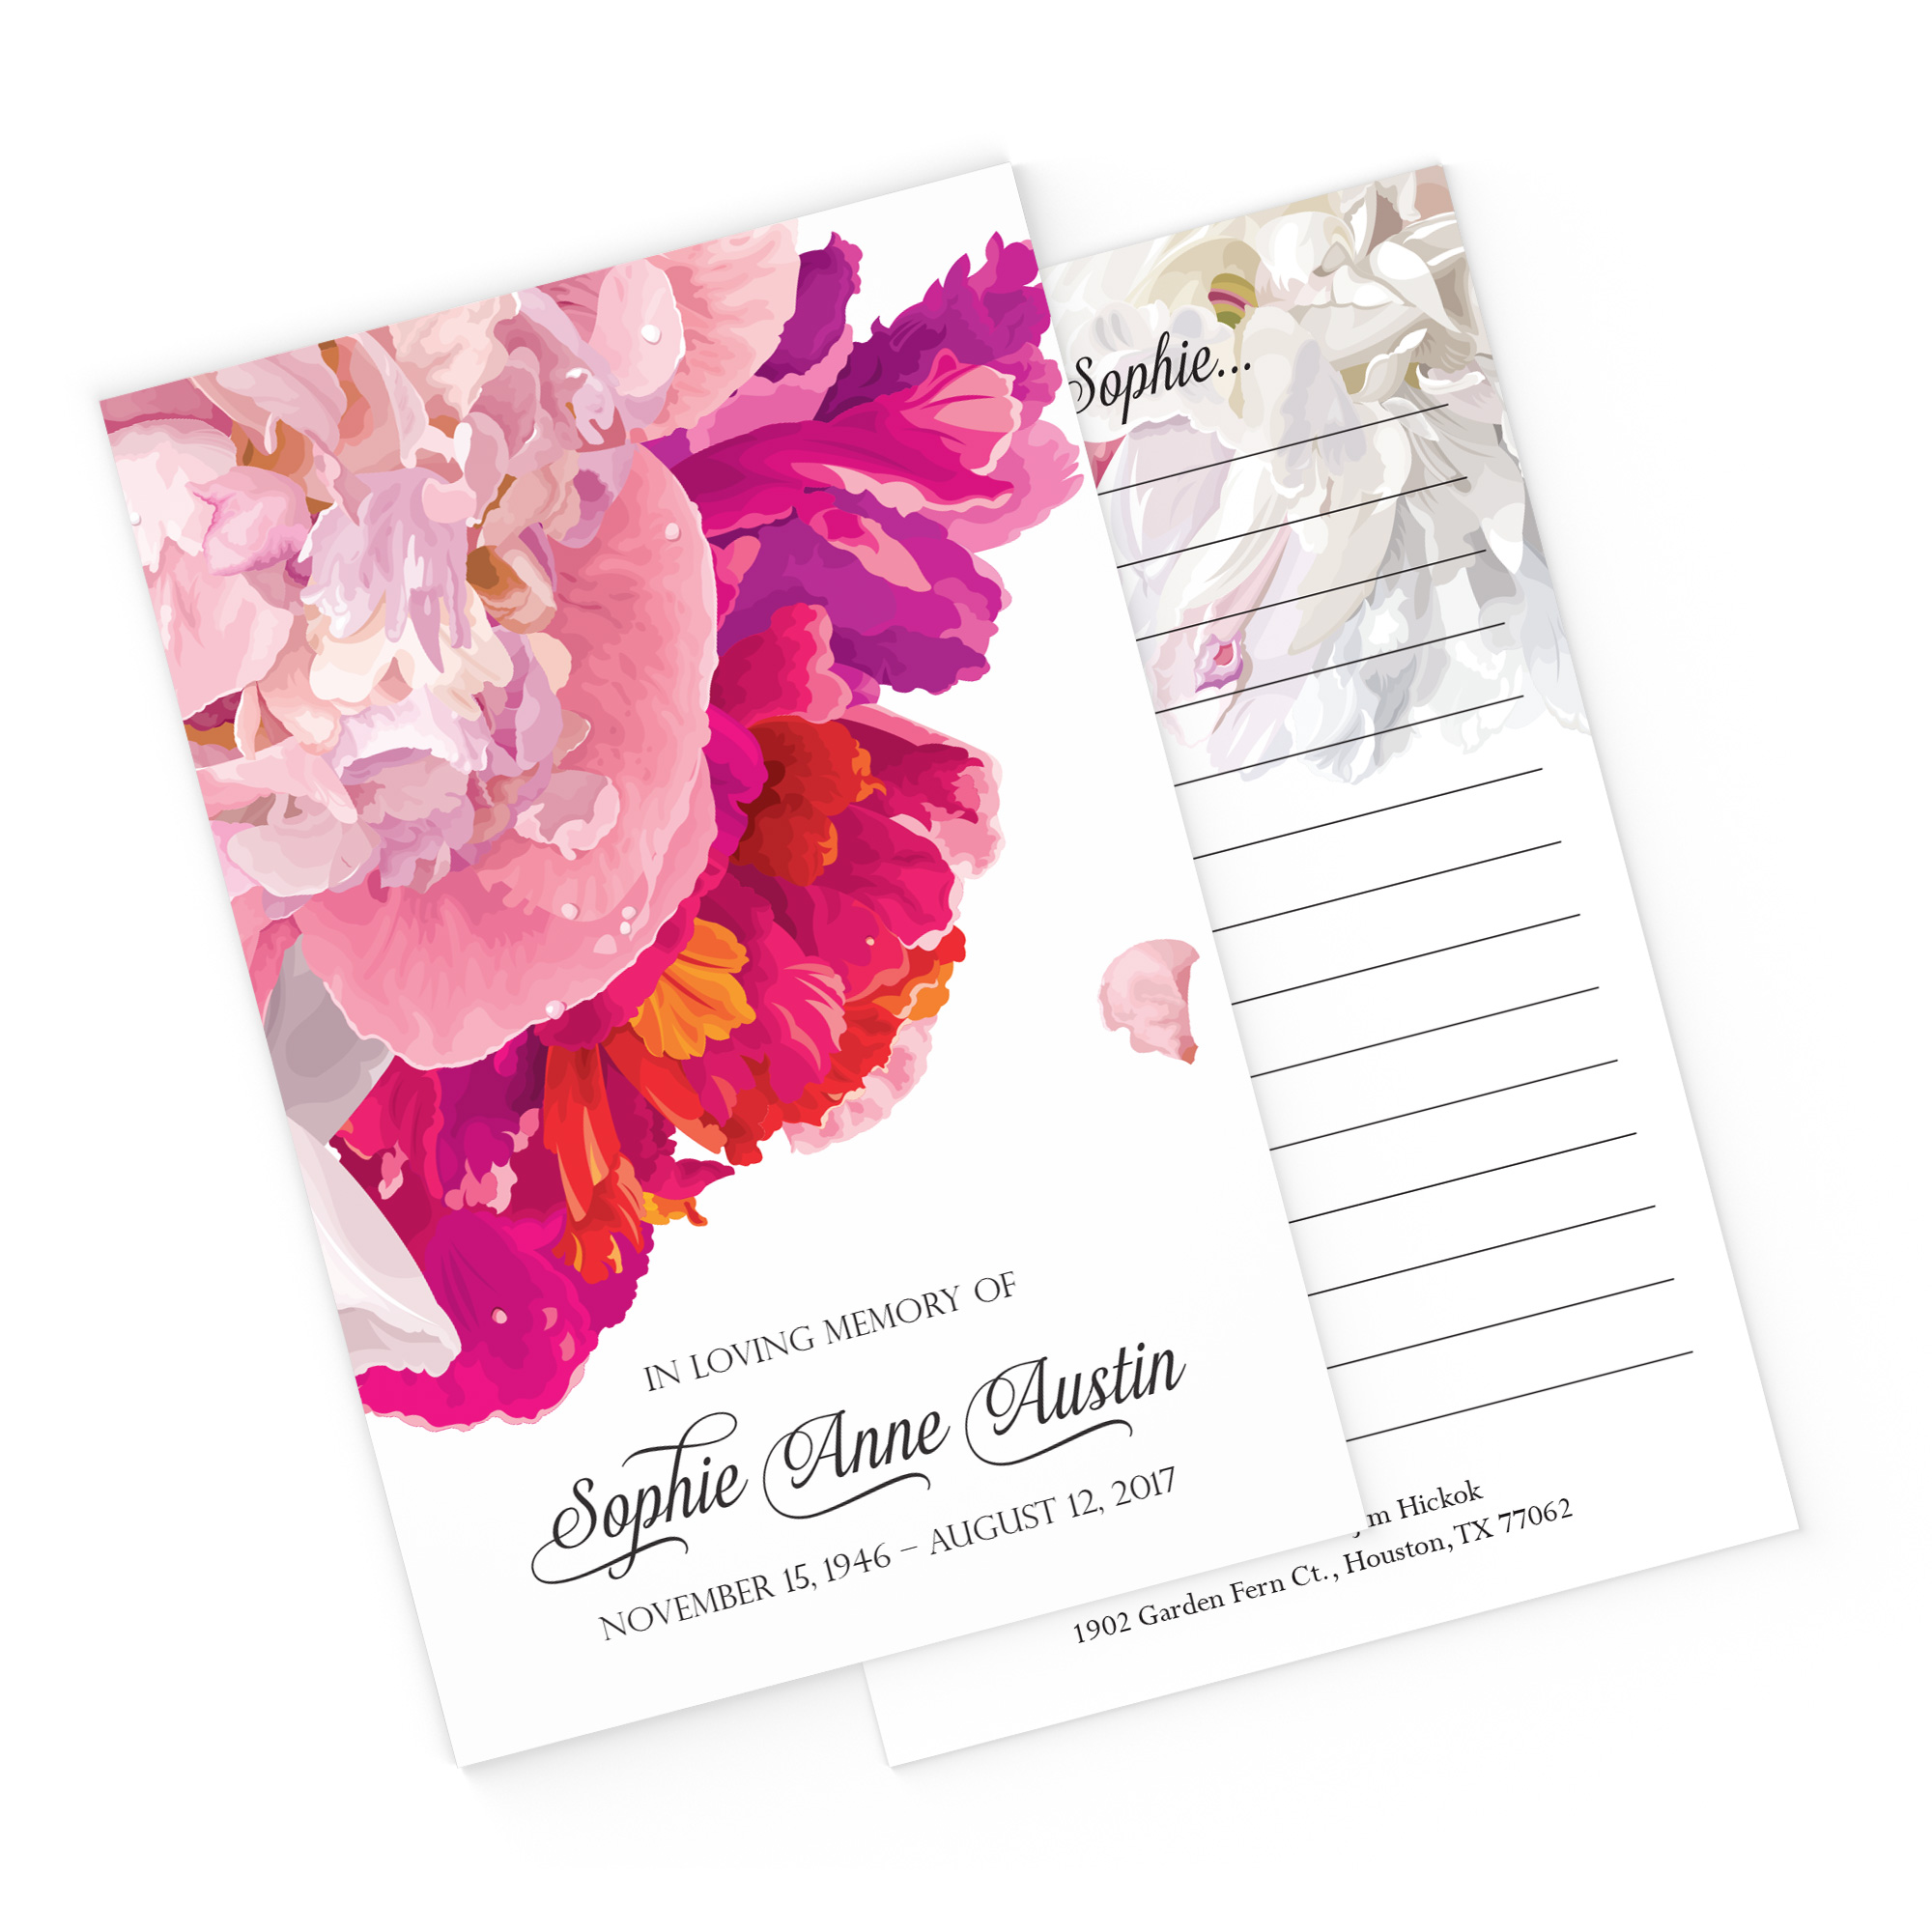 Soft Peonies Share a Memory Cards